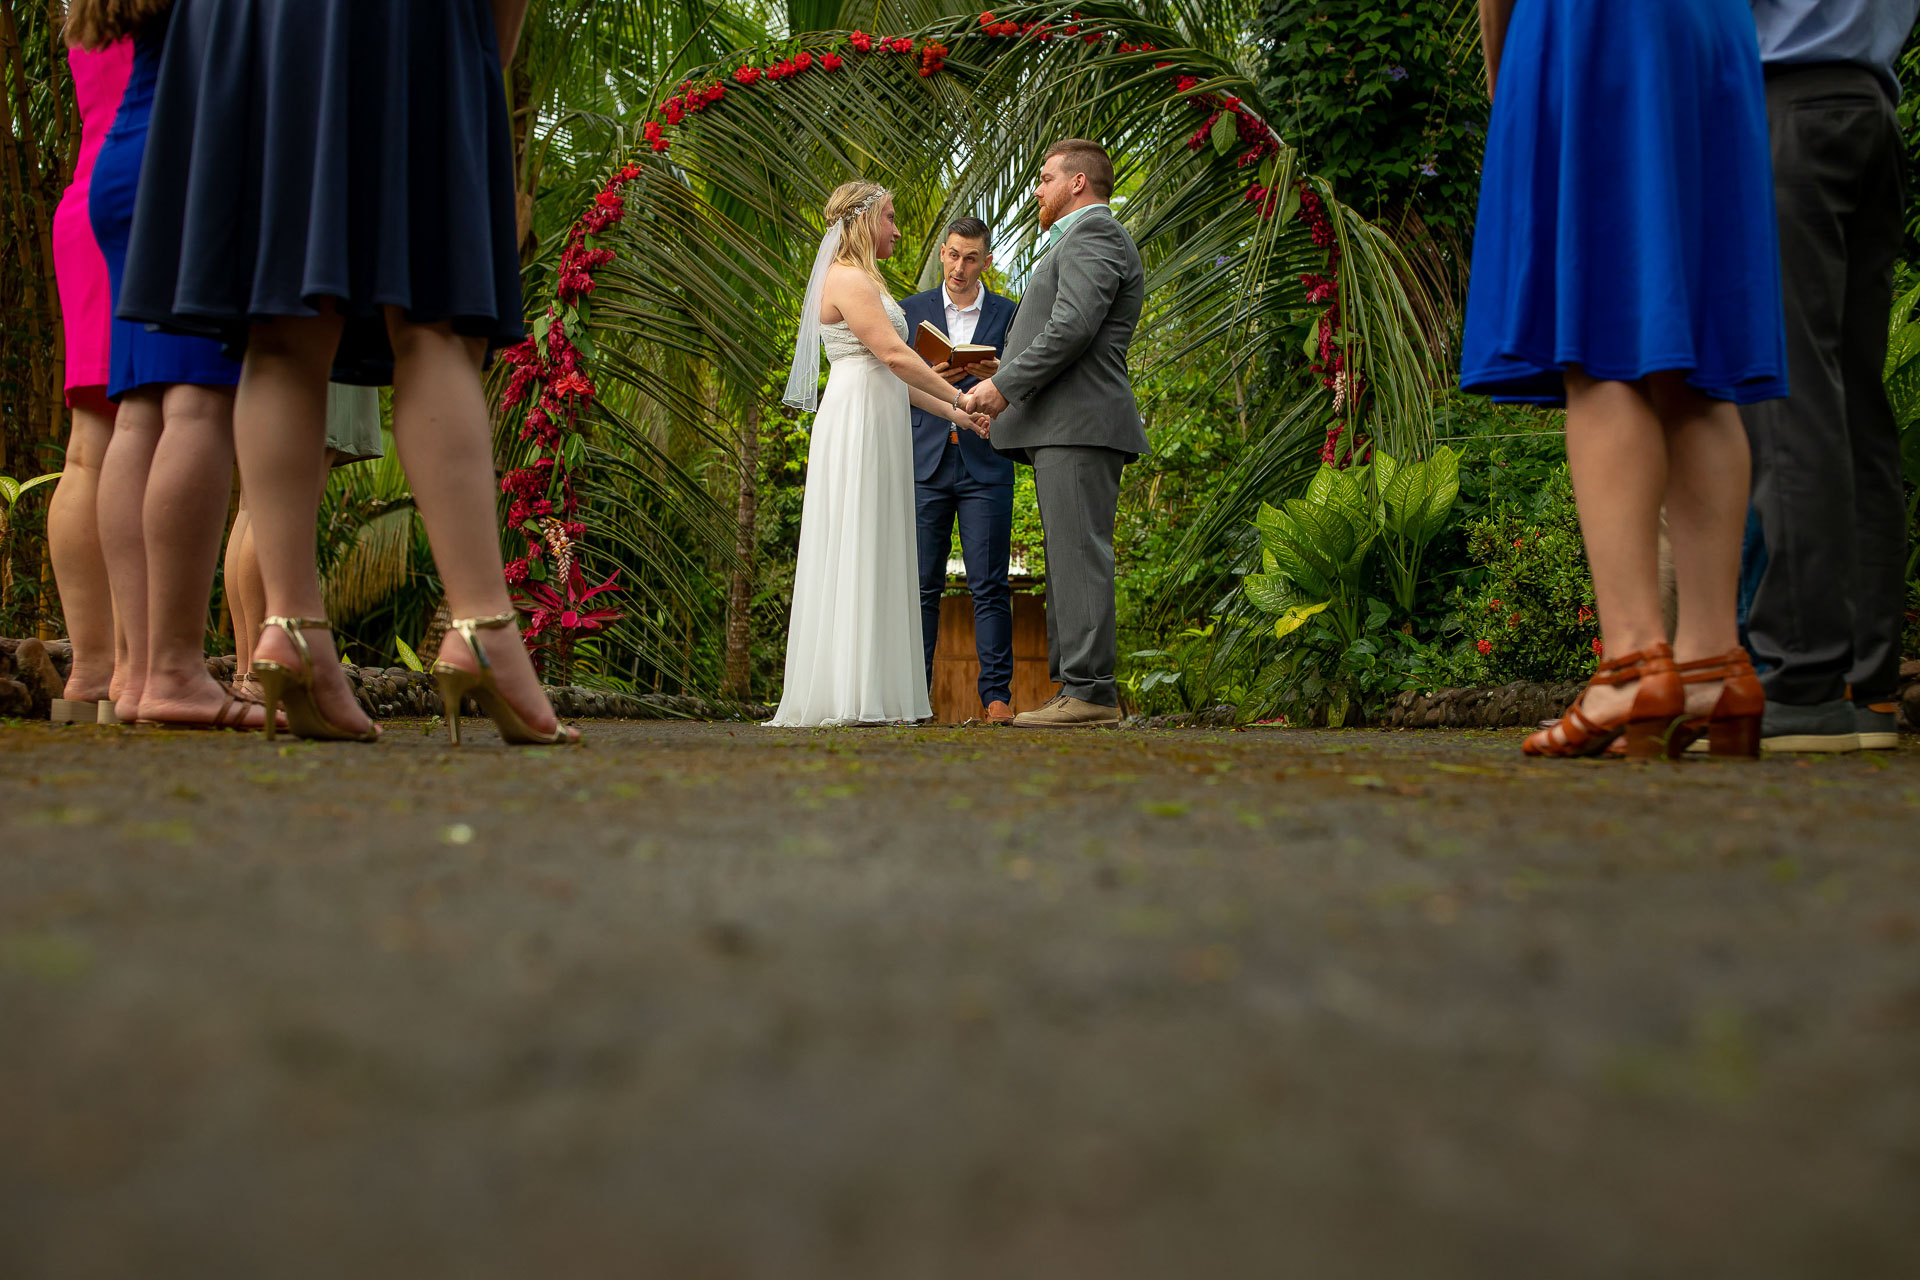 Montaña, Costa Rica Elopement Ceremony Photography | The ceremony took place at a private villa